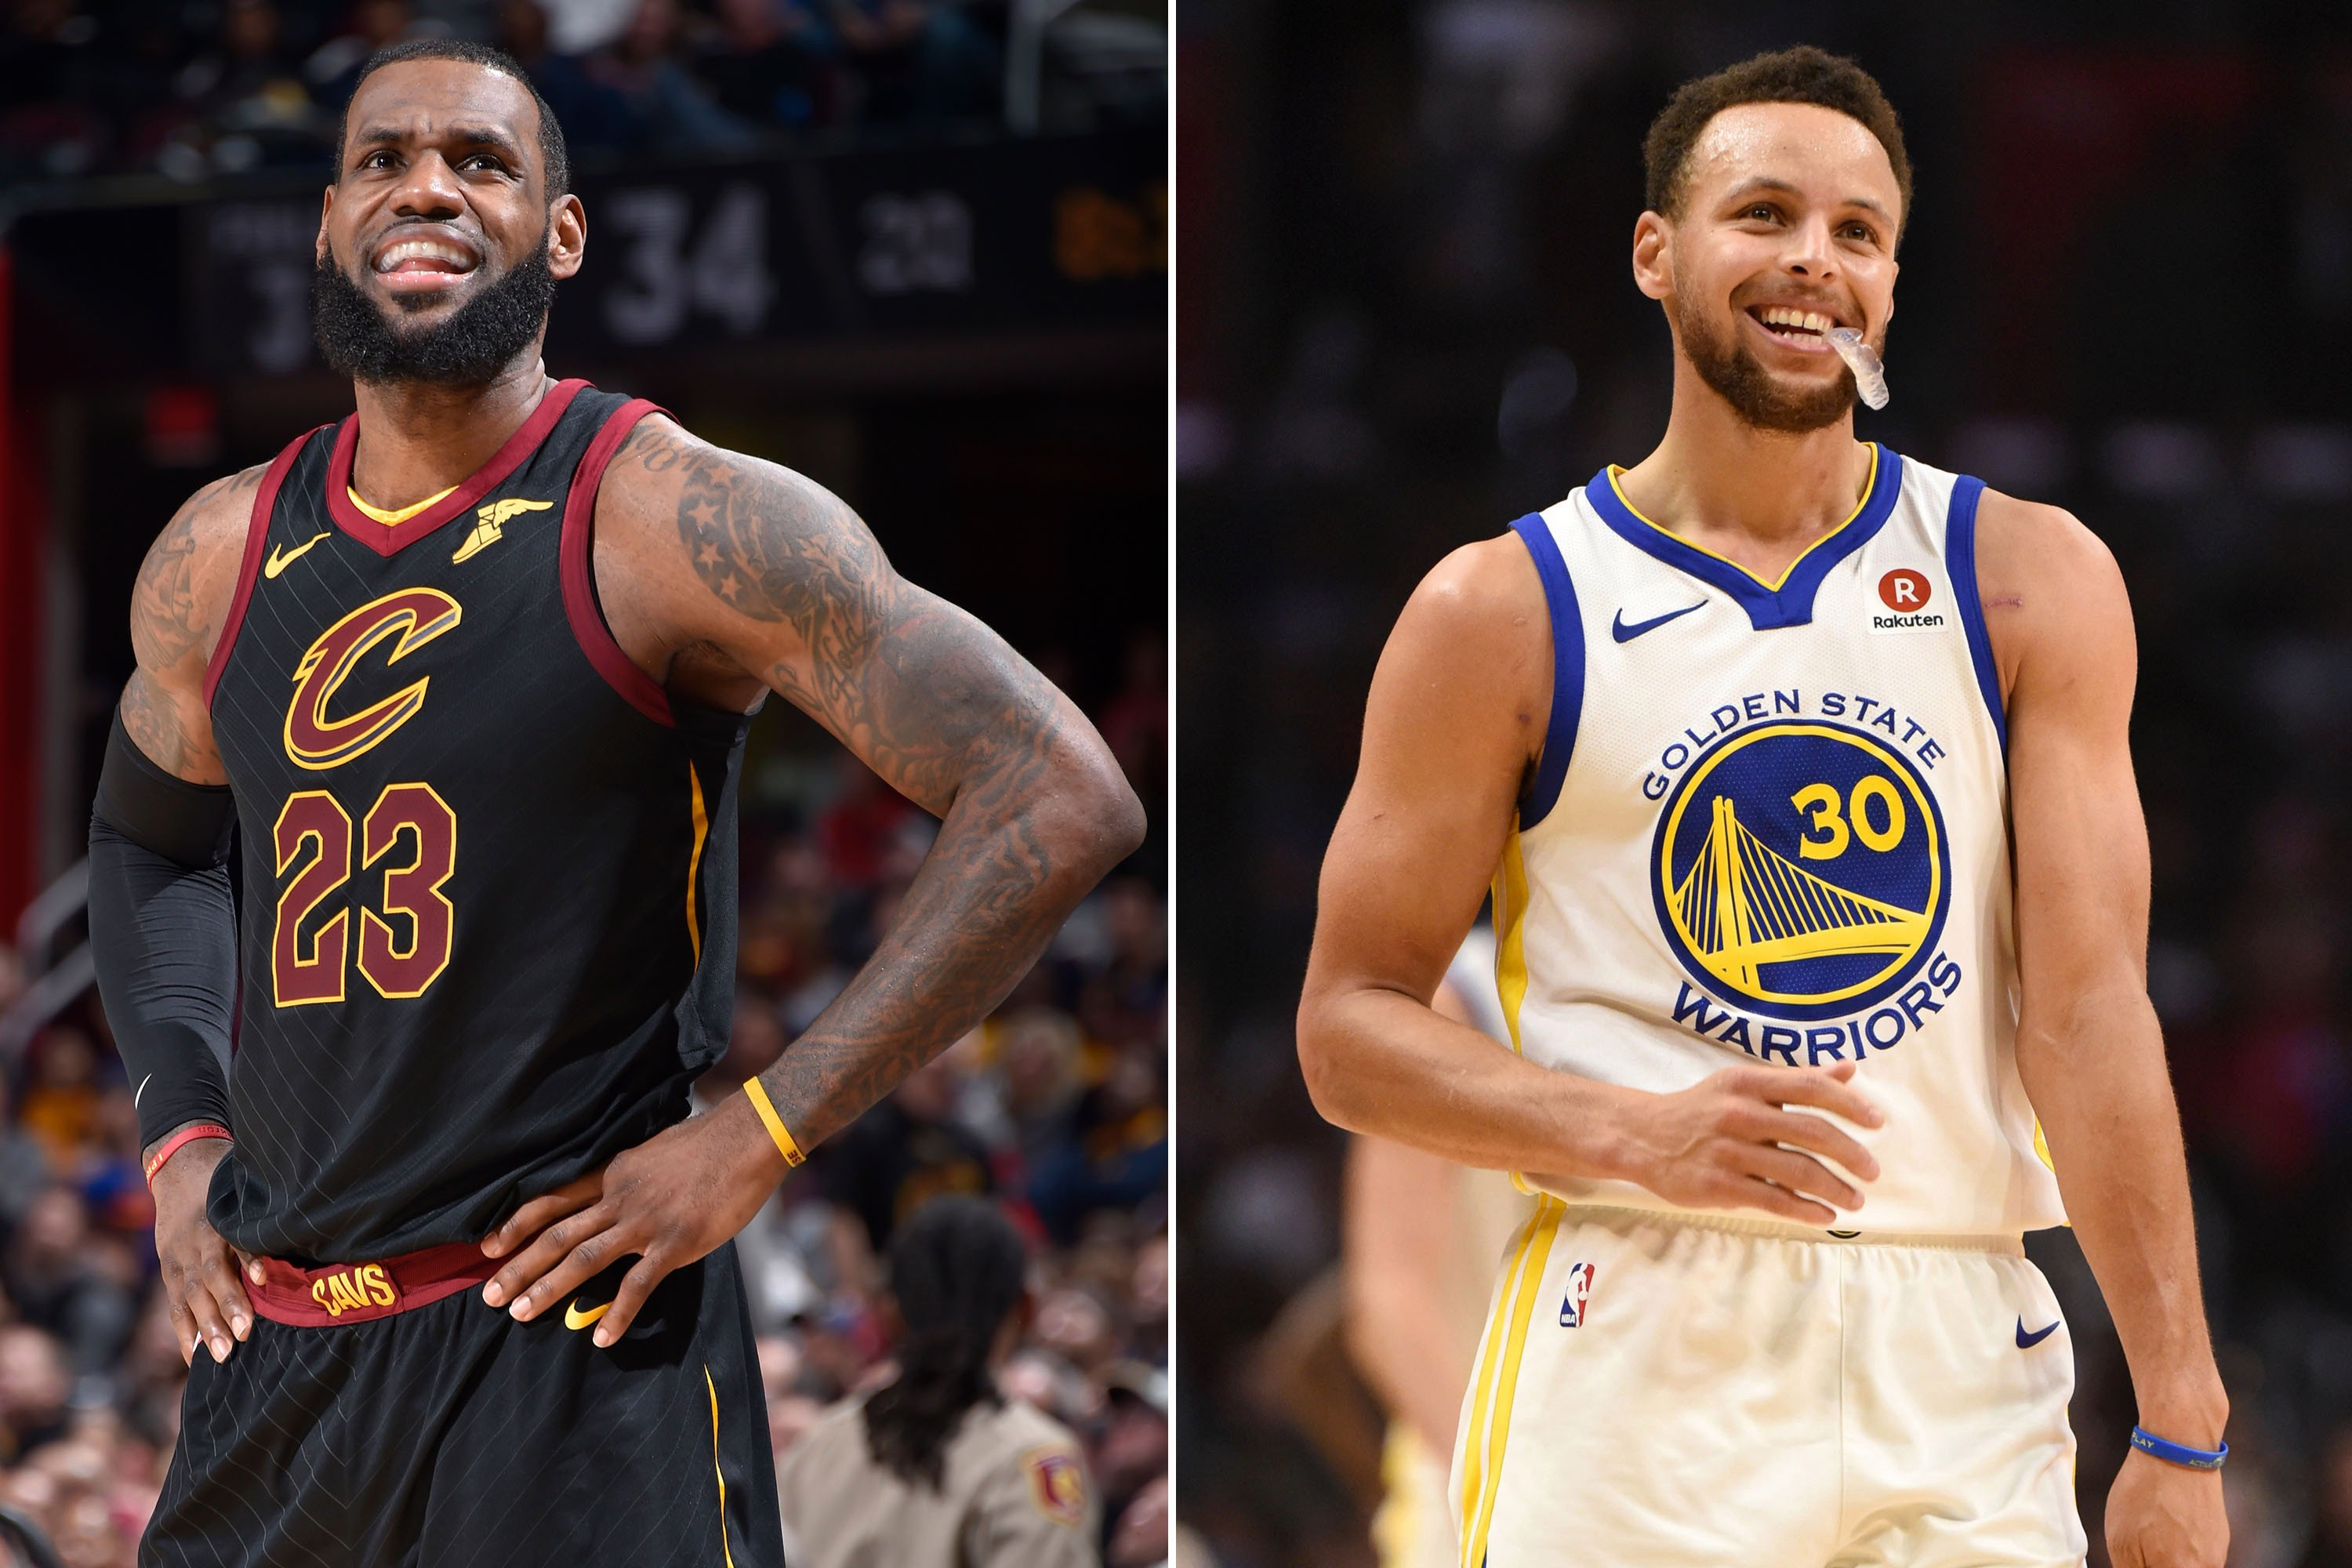 LeBron James, Steph Curry duke it out in first All-Star Game draft